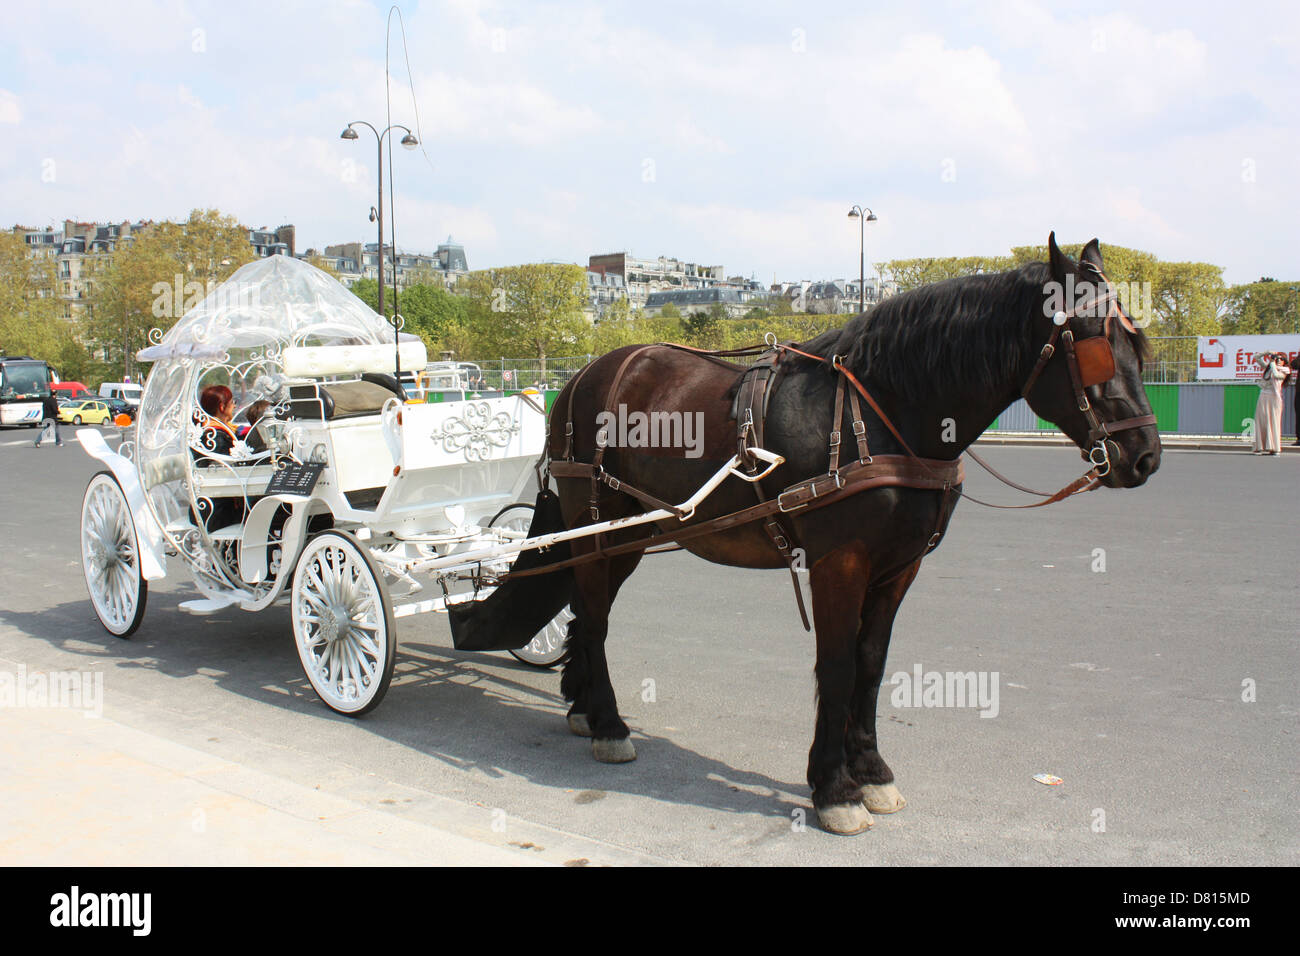 Horse chariot with passengers in Paris, France Stock Photo